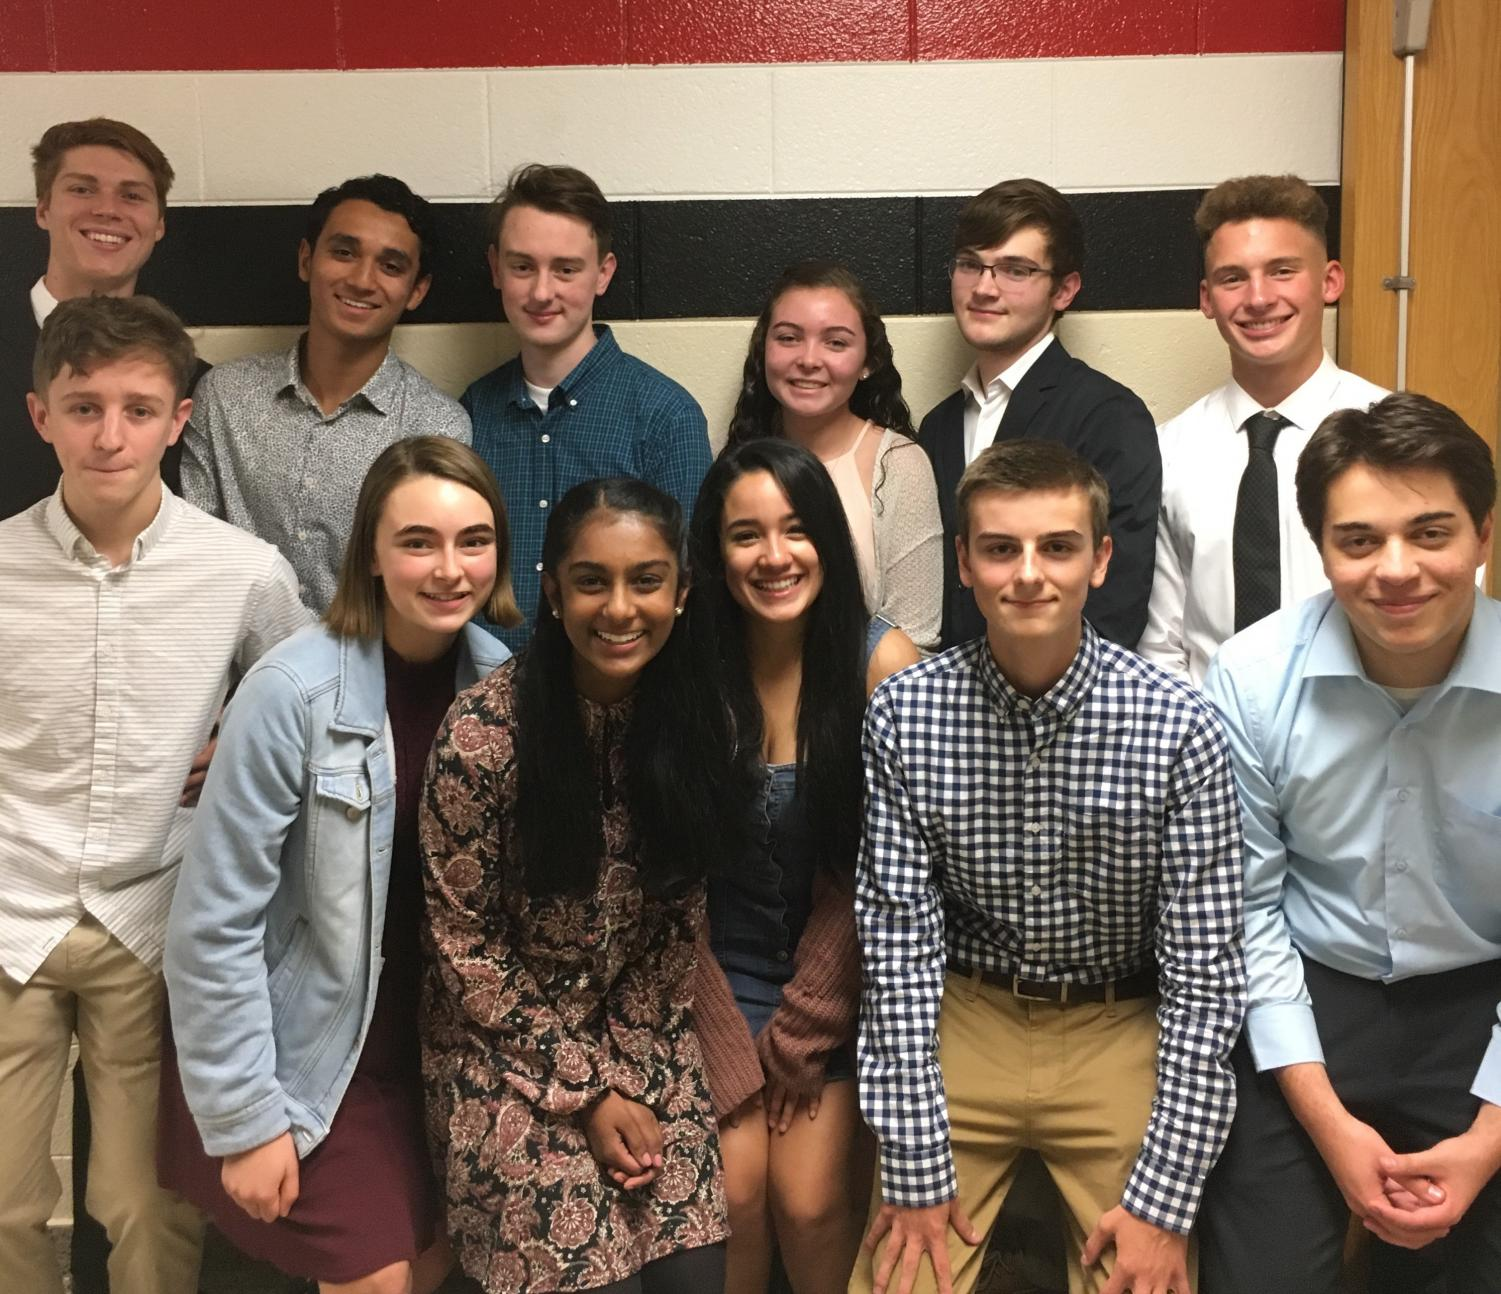 Juniors and seniors pose together backstage before being inducted into the National English Honor Society Wednesday evening.